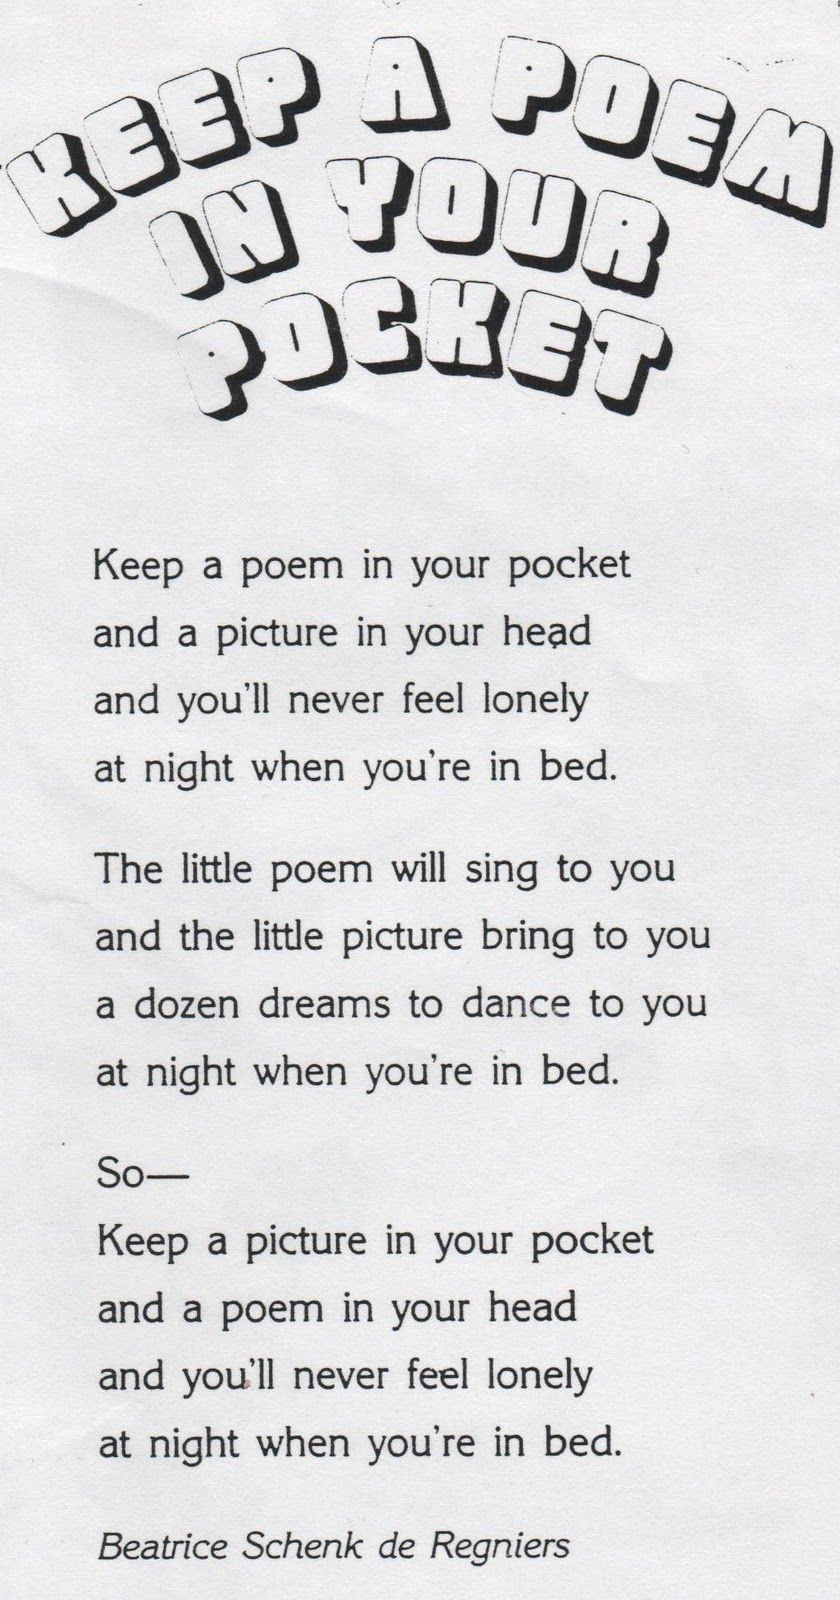 photo about Keep a Poem in Your Pocket Printable called Fundamental Higher education ENRICHMENT Actions: Continue to keep A POEM Within YOUR